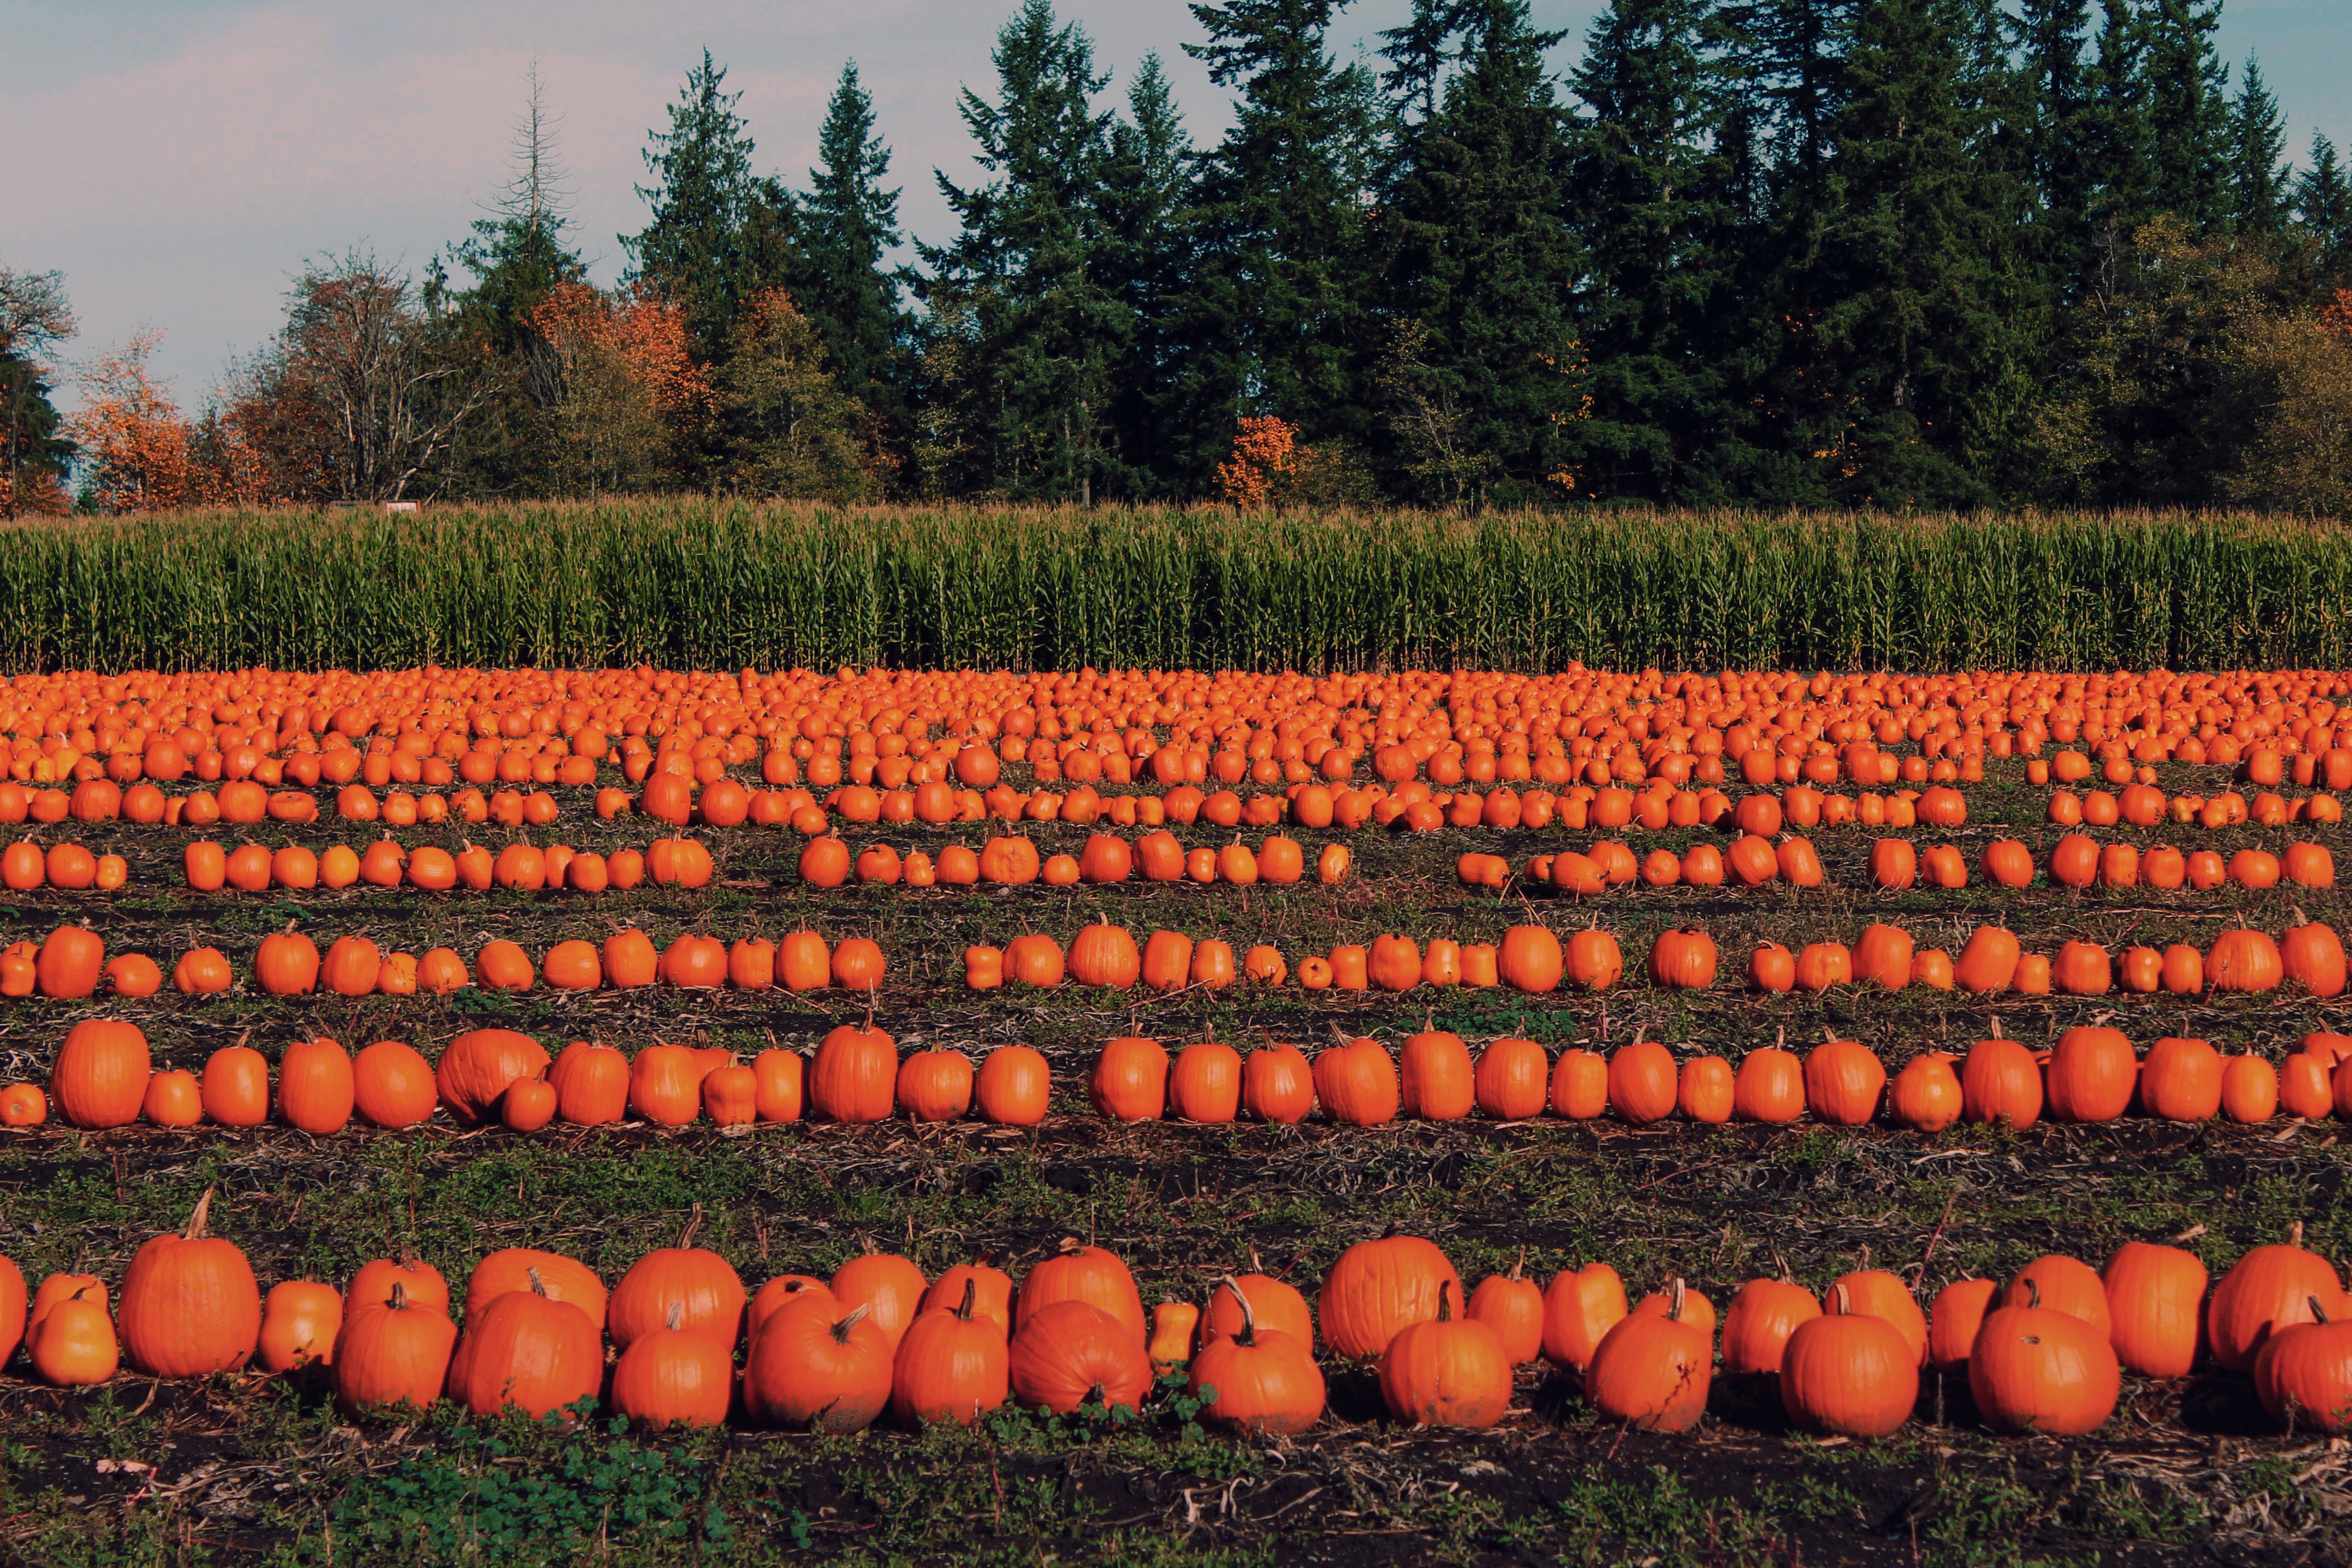 A pumpkin patch in Seattle. There are rows of orange pumpkins in a field. Lining the field are dark green shrubs and trees.